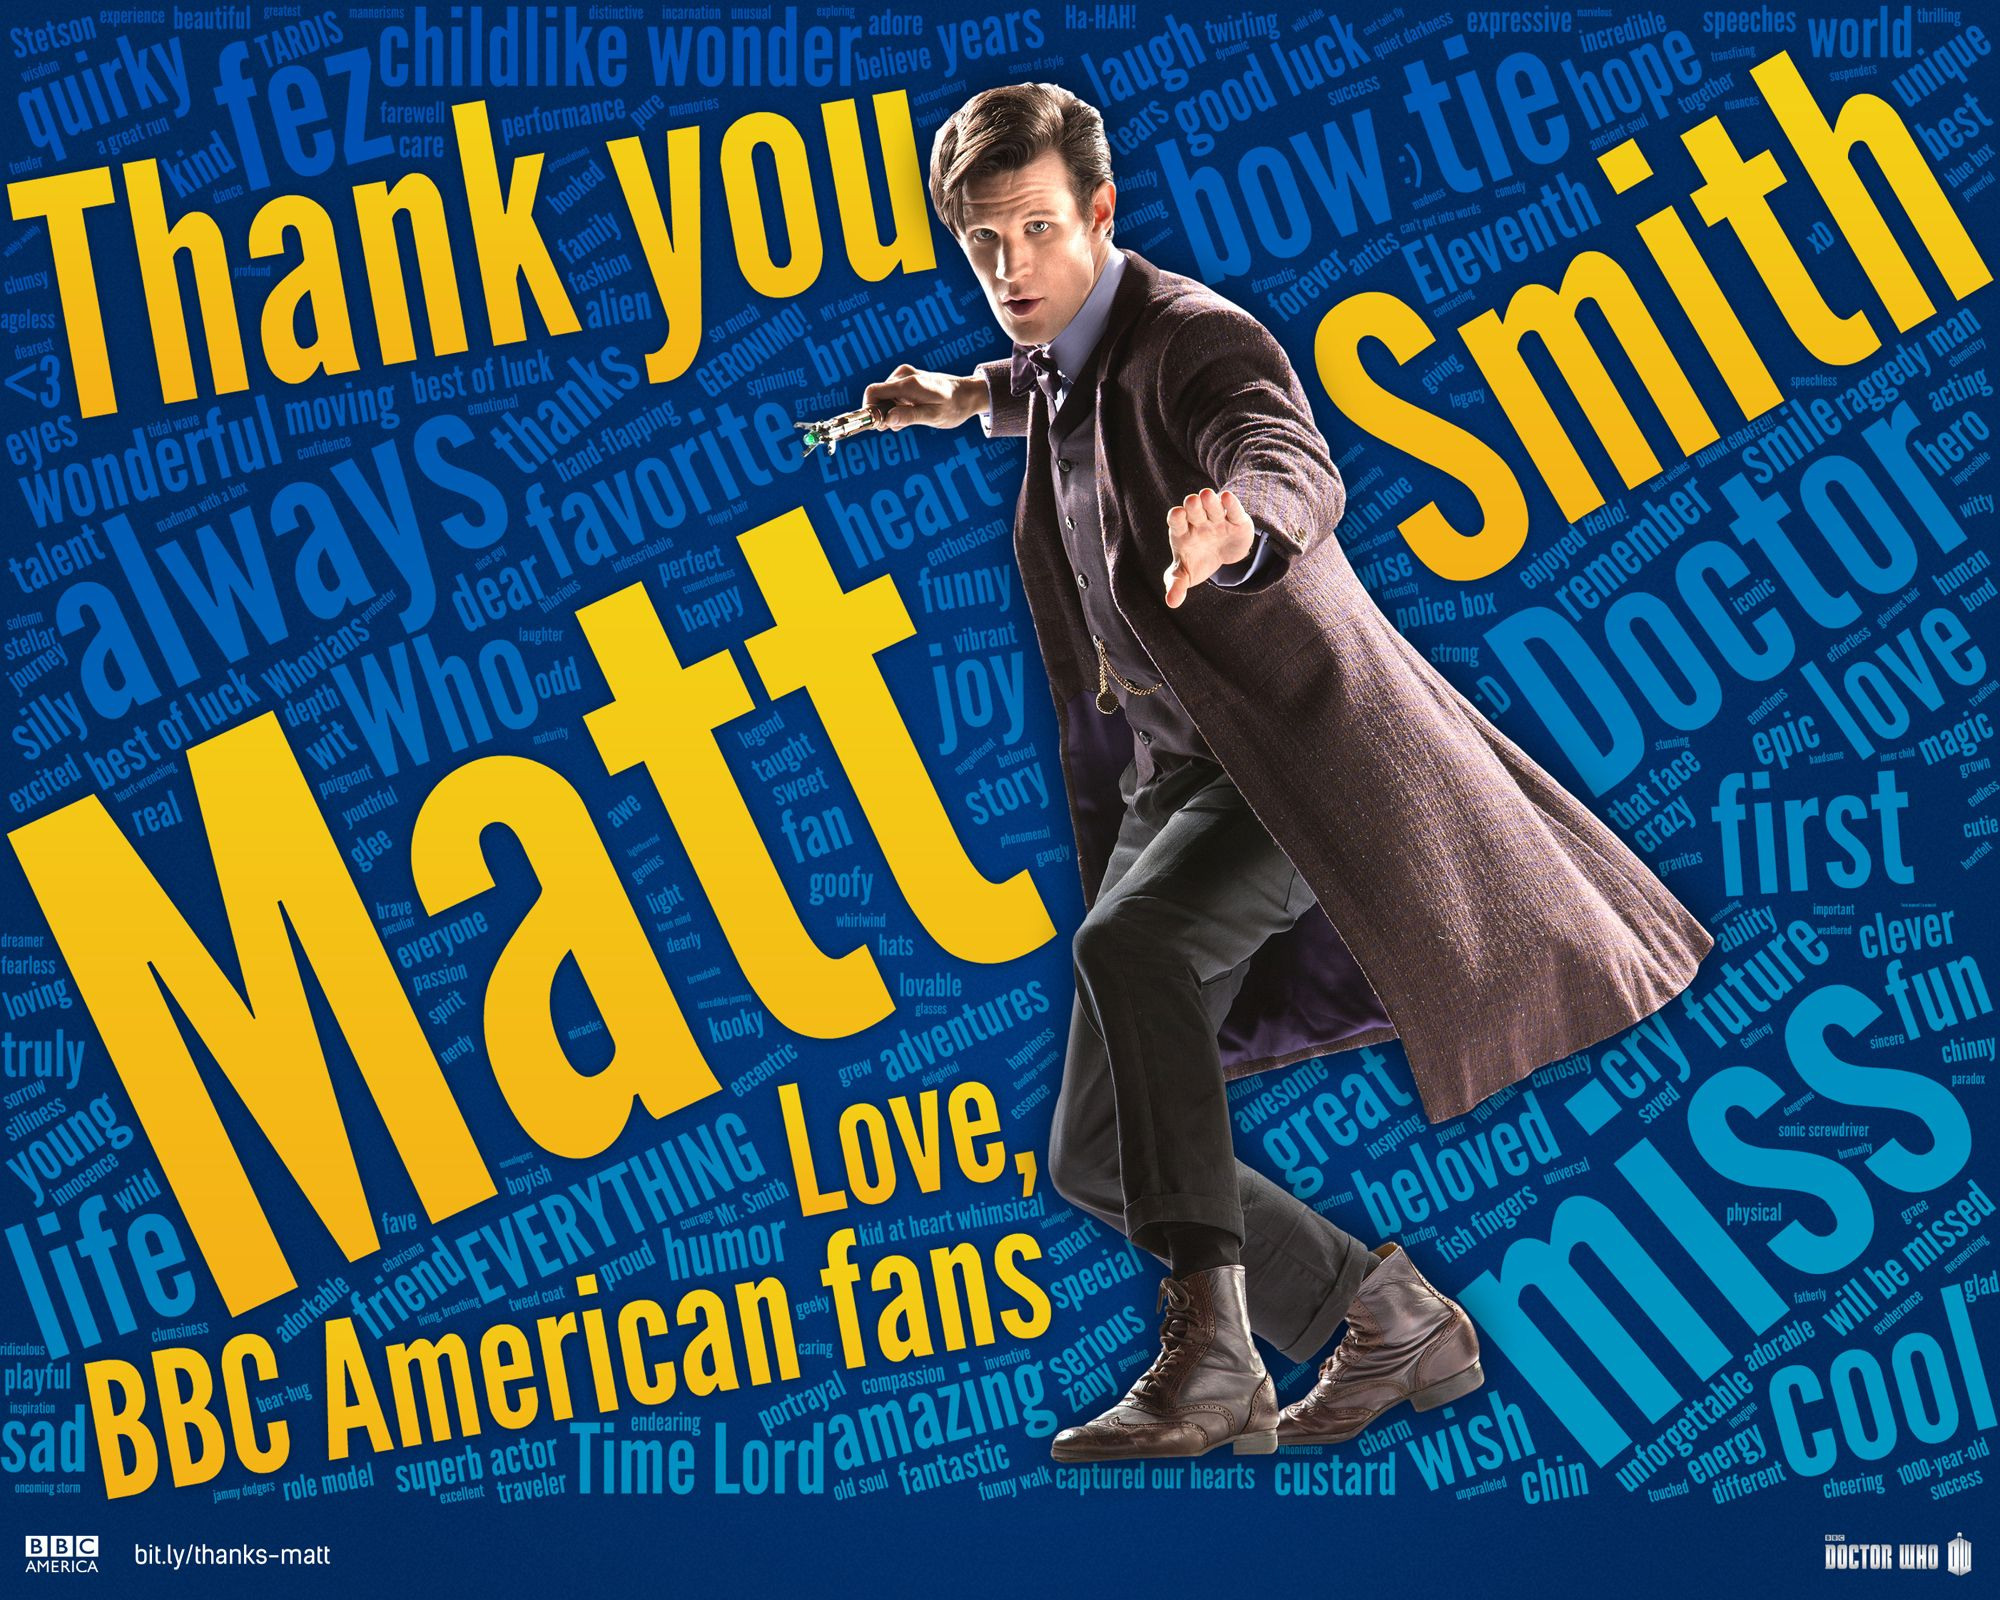 Thank You Matt Smith, a BBC word montage consisting of over 1600 heartfelt comments from Whovians describing what they love about the Eleventh Doctor. Geronimo!